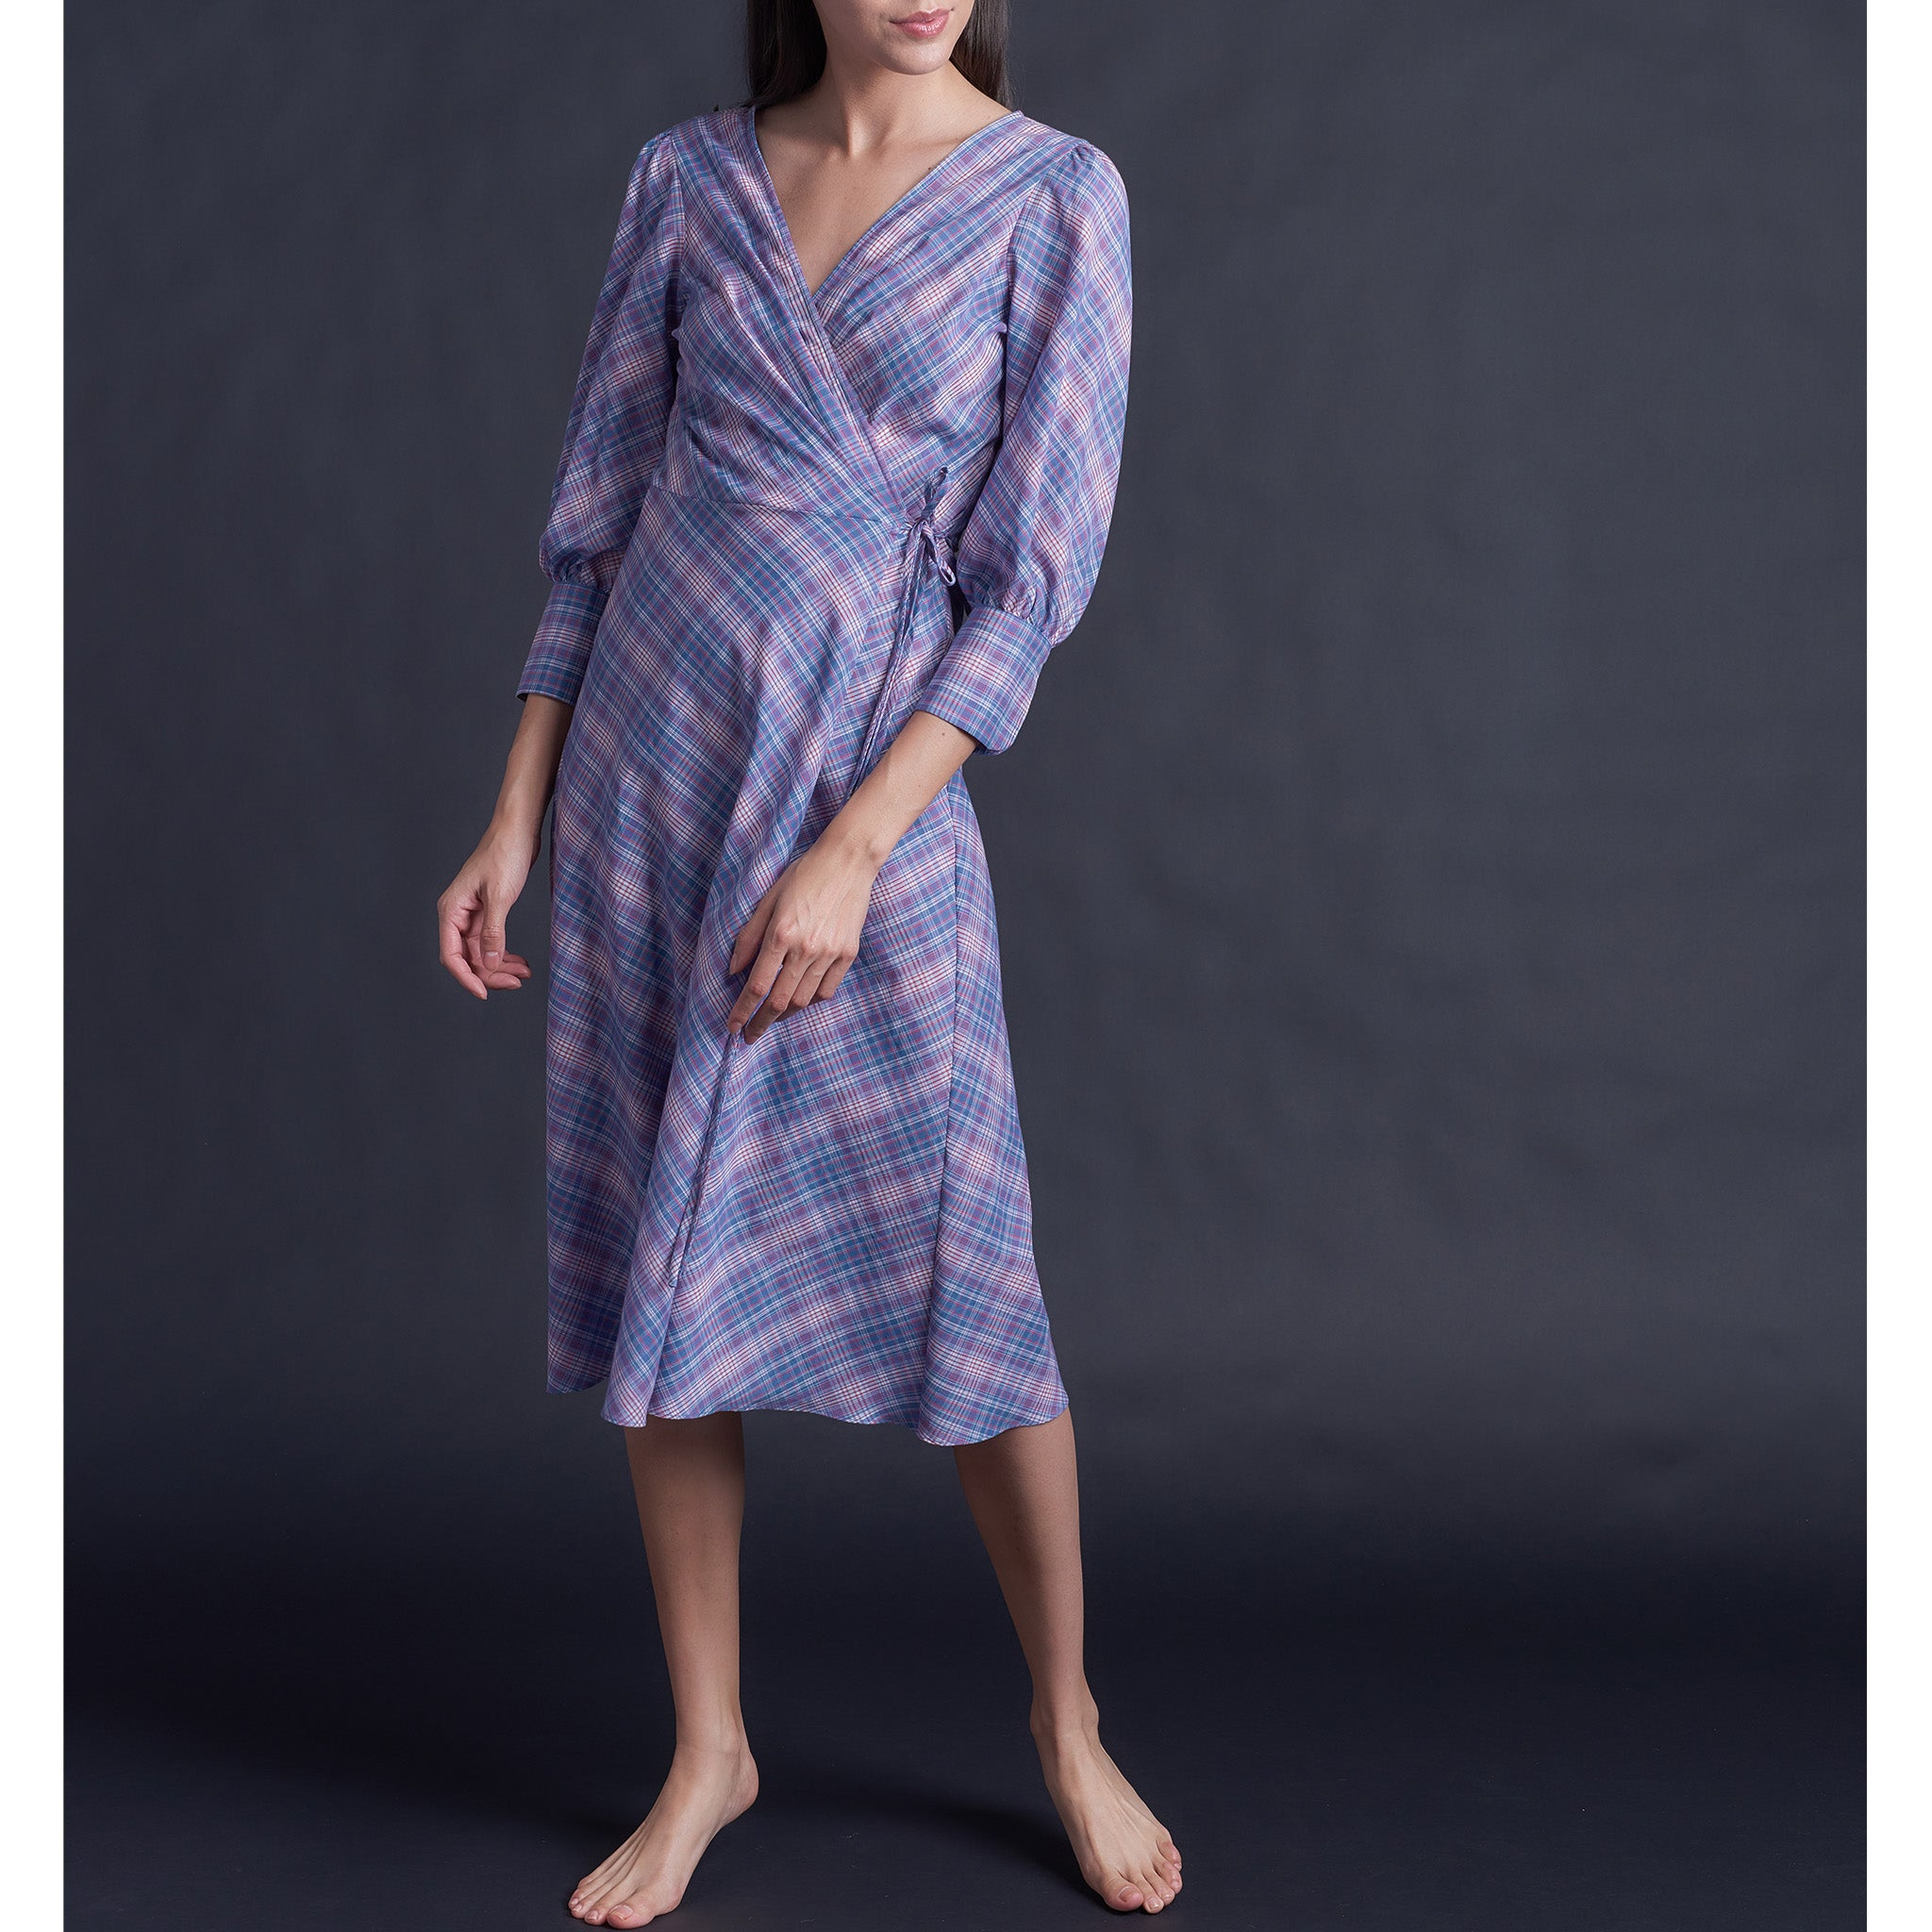 Hestia Wrap Robe in Italian Cotton Plaid